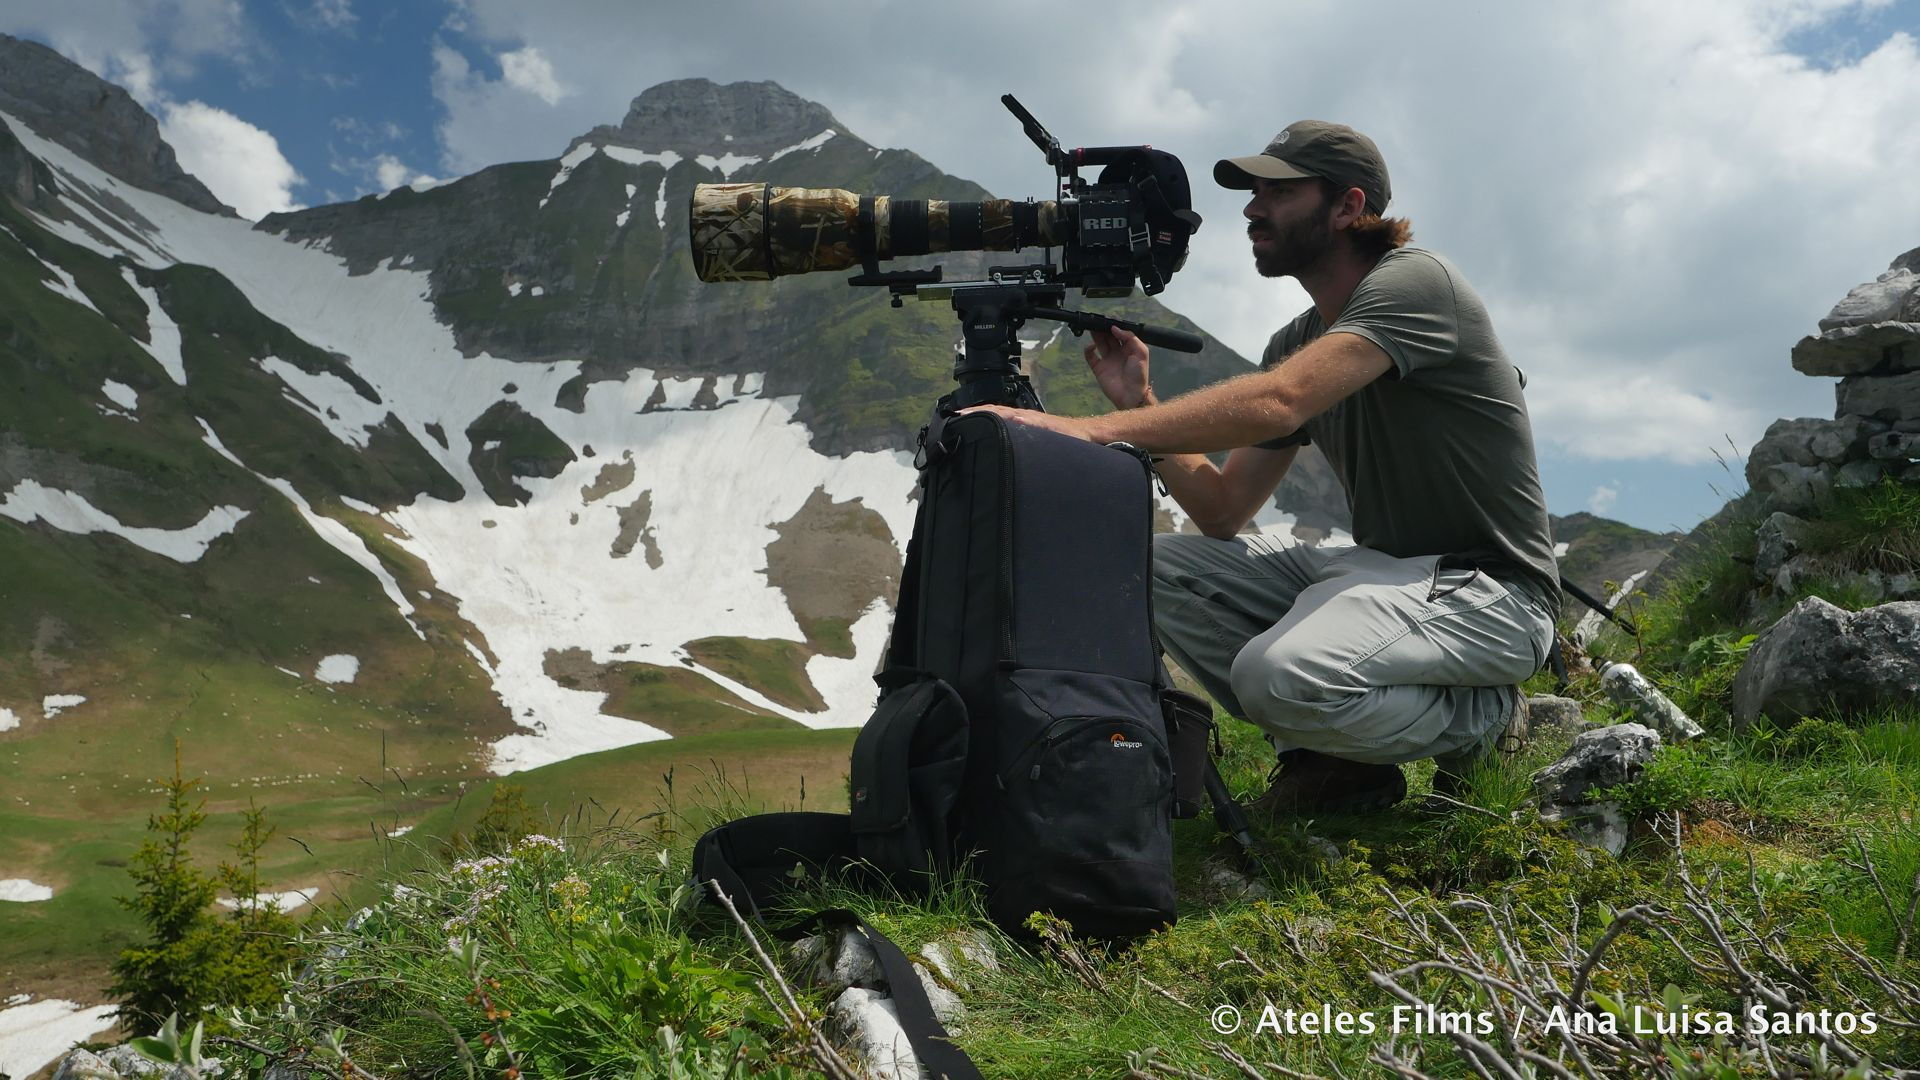 Michael Sanderson using RED cameras for filming wildlife